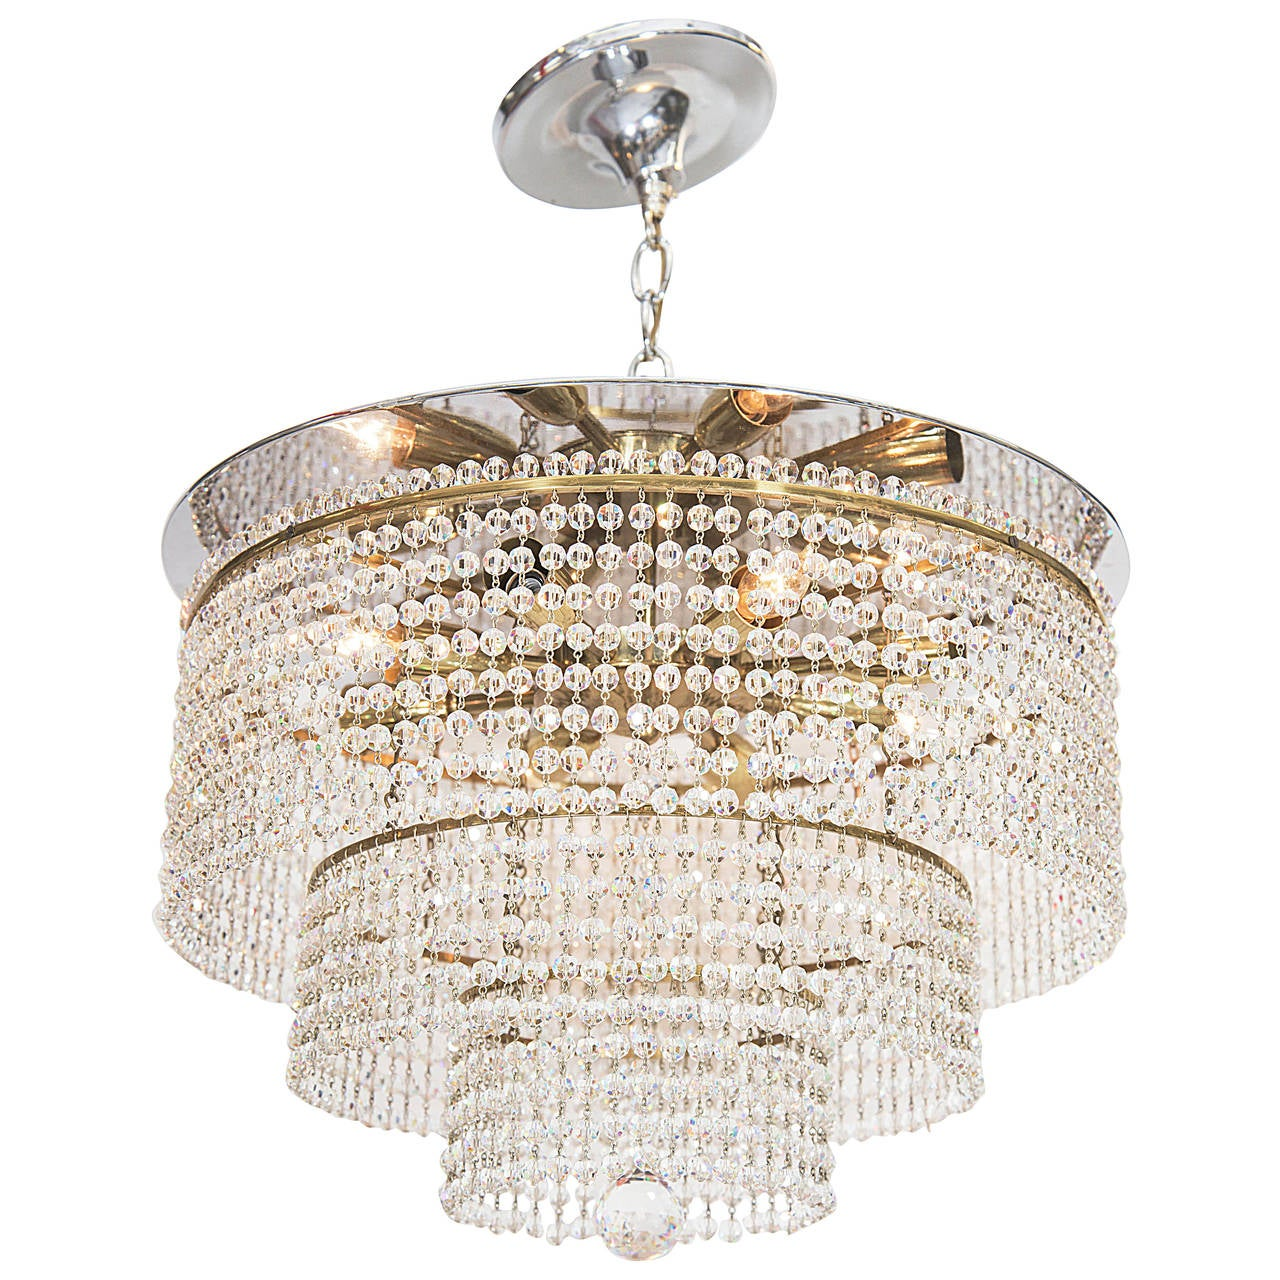 Italian midcentury waterfall chandelier with swarovski crystal beads at 1stdibs - Chandelier glass beads ...